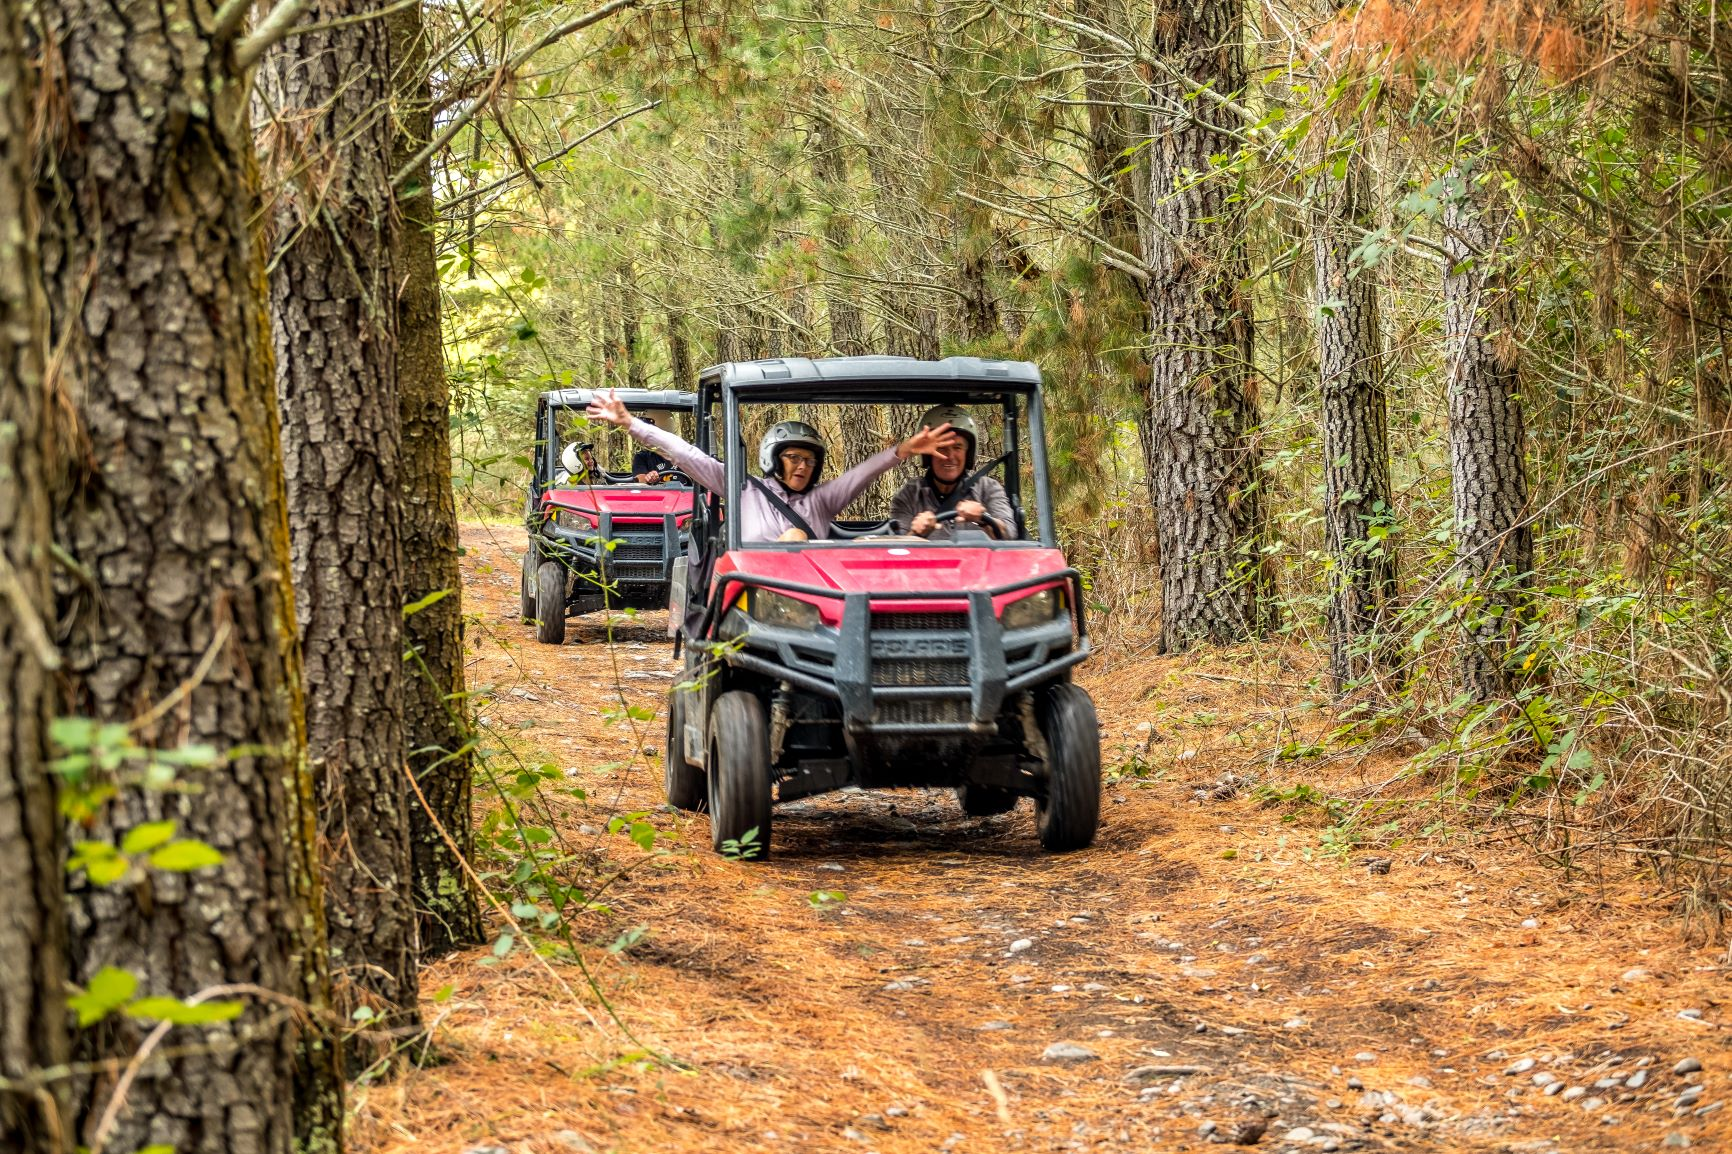 Couple on Hanmer Springs Attractions Off Road Buggy through forest